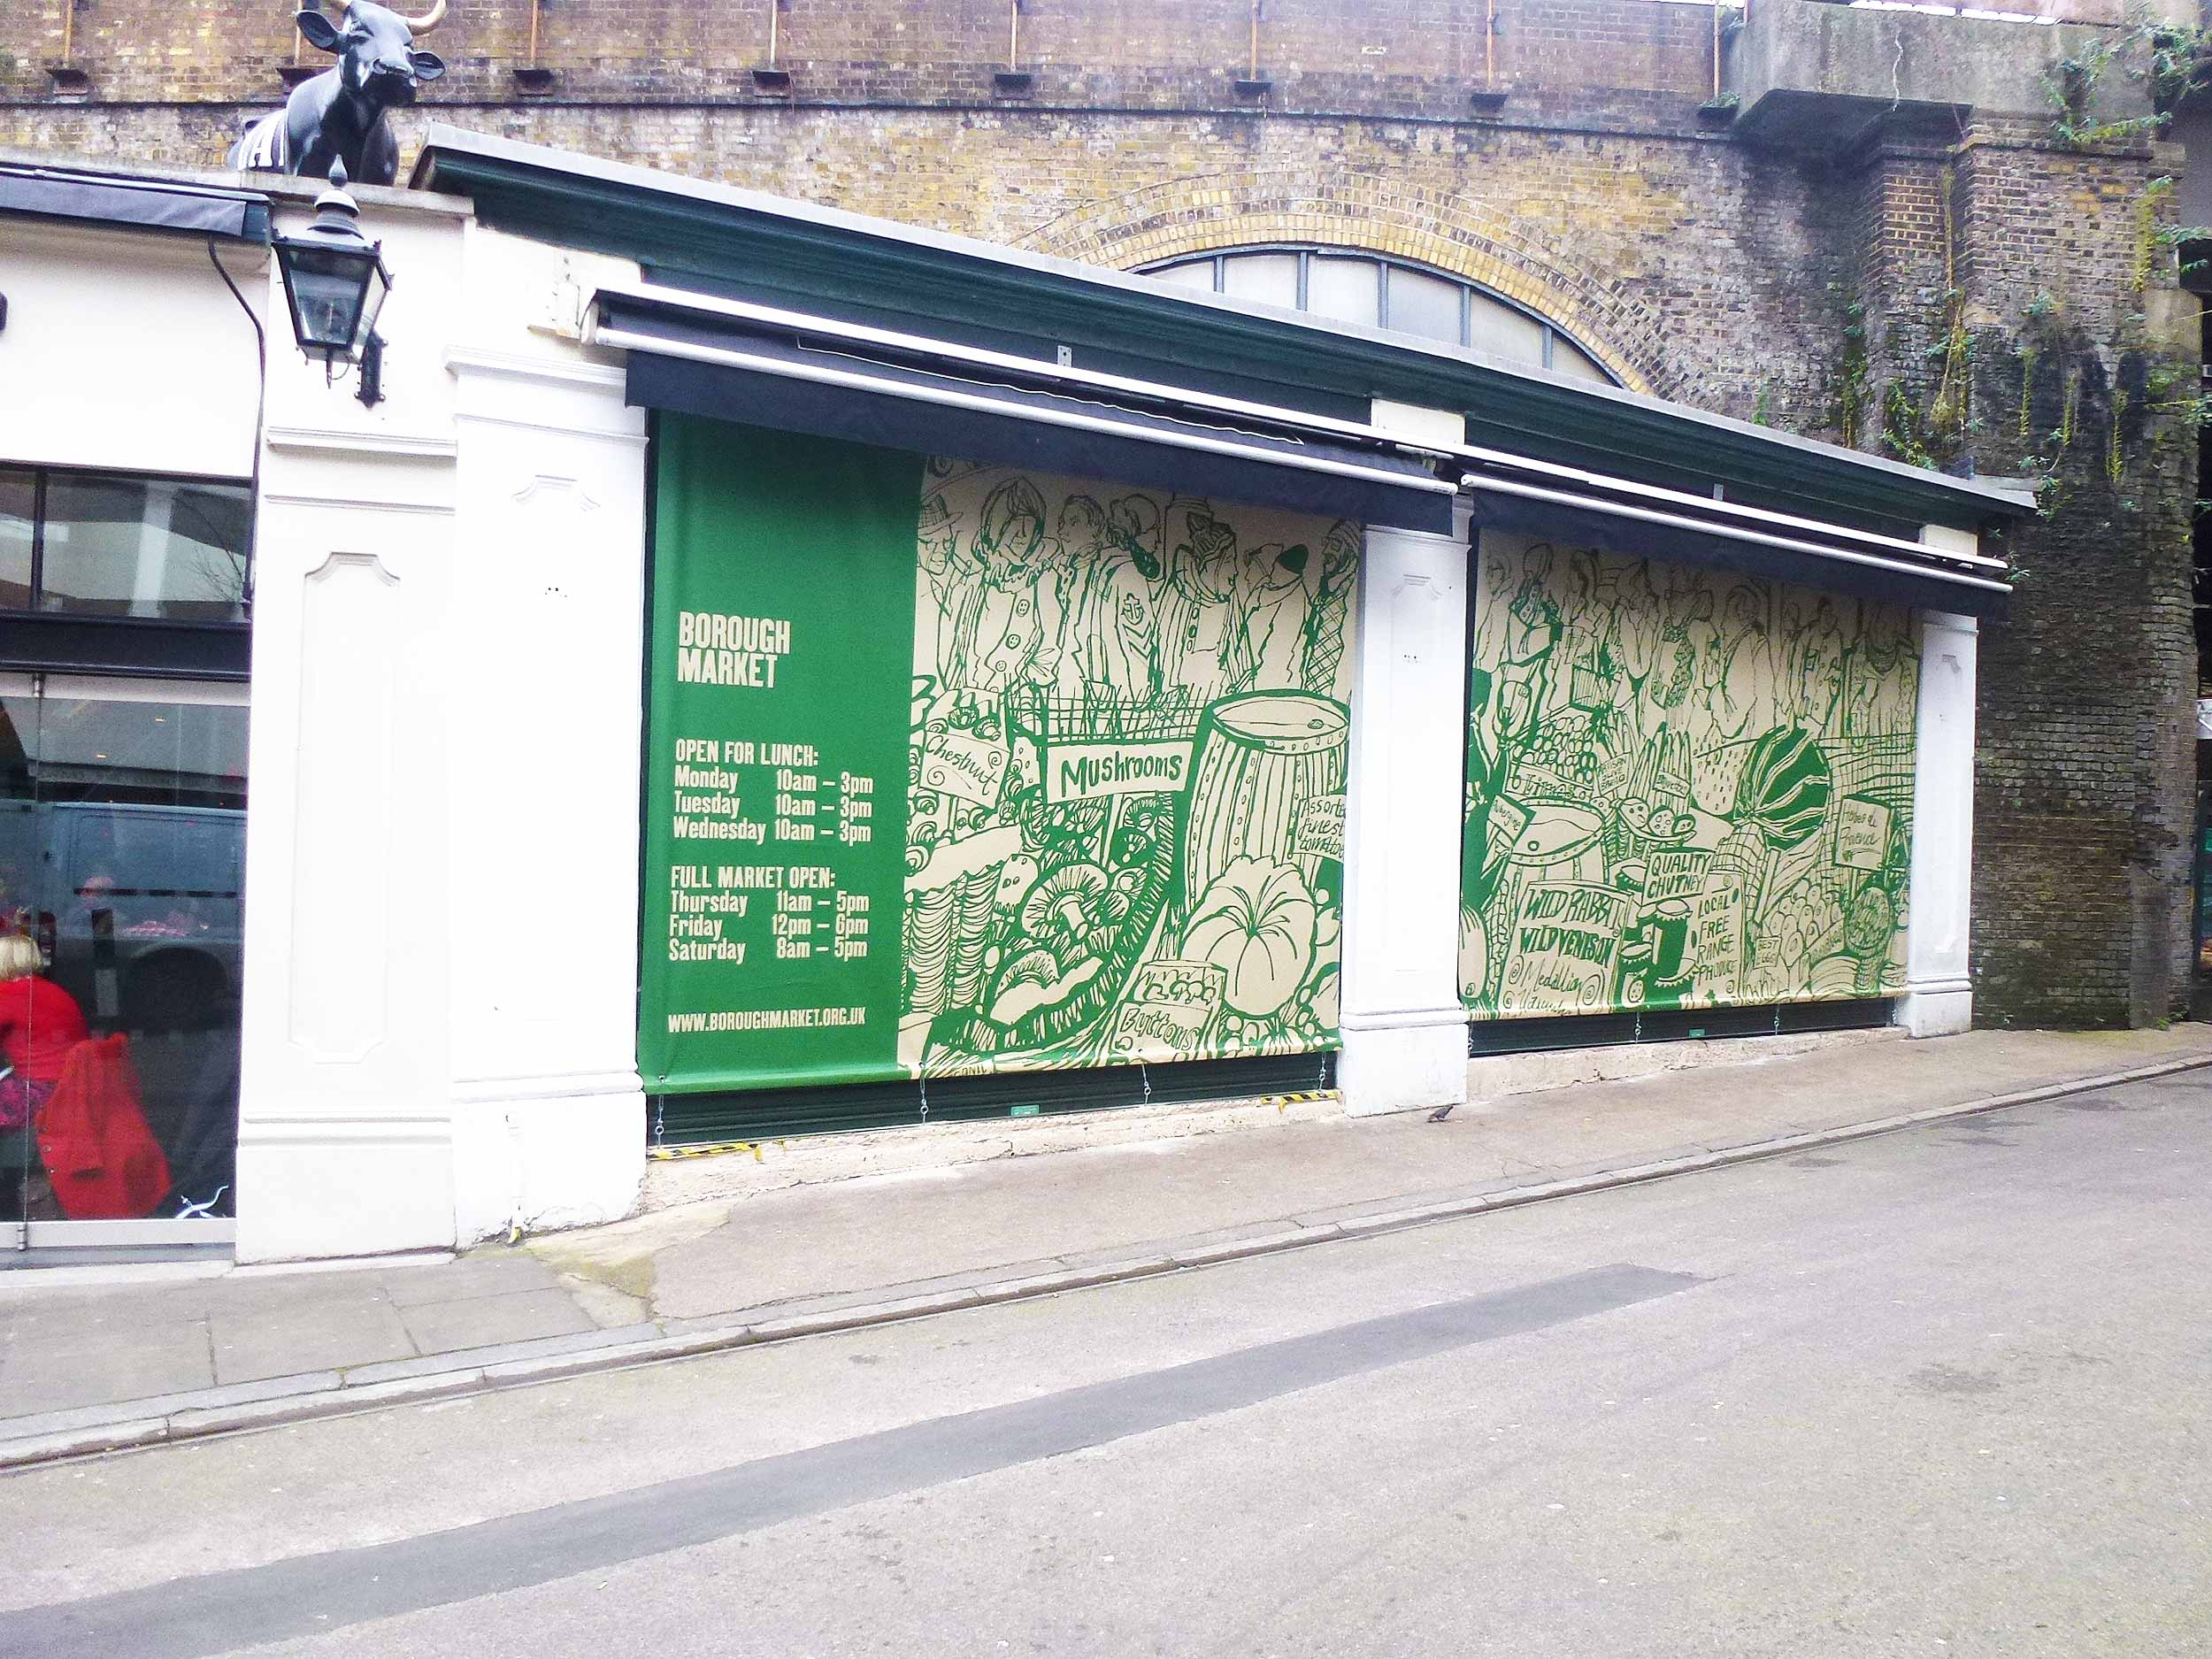 More Borough Market by James Oses, image 7